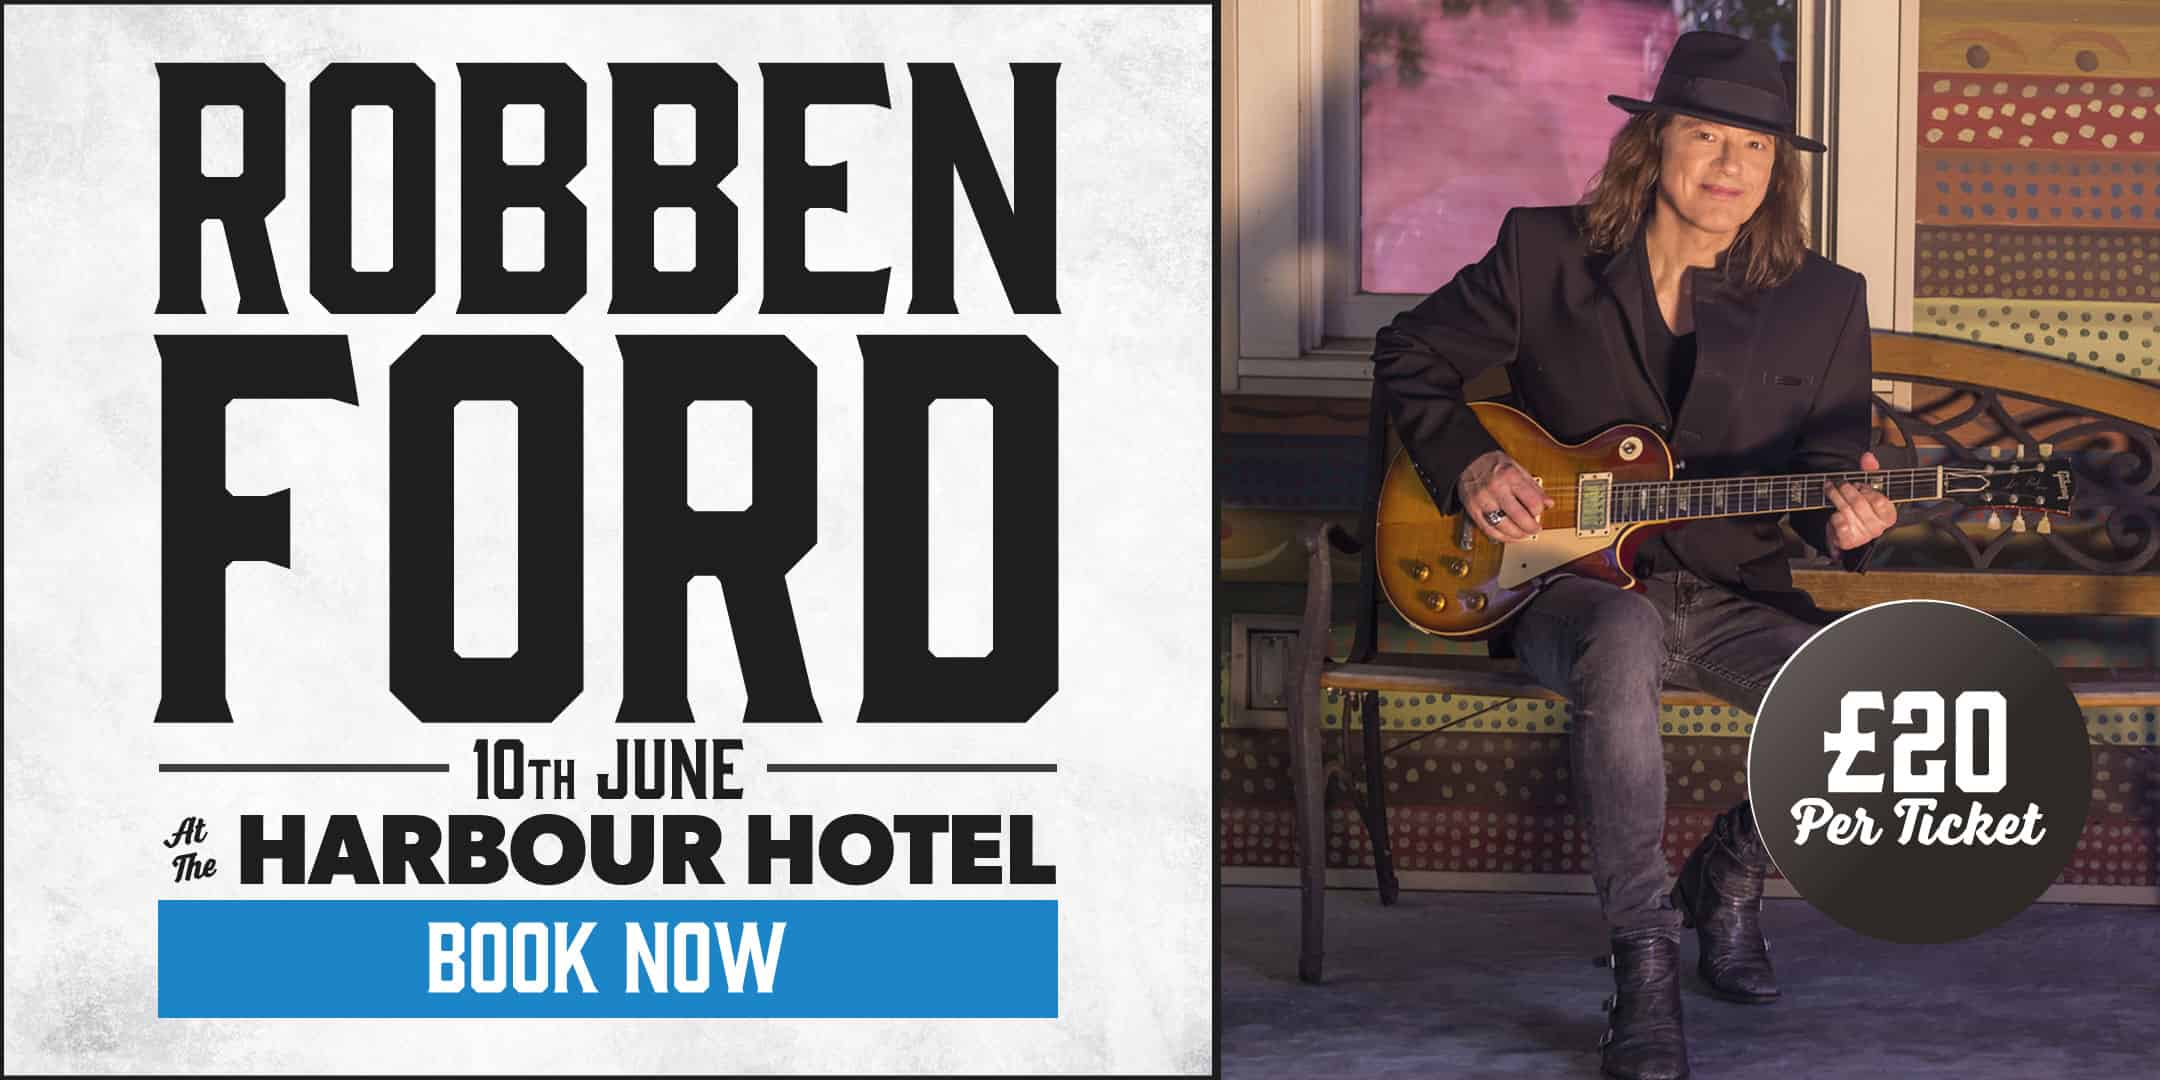 Andertons Music Co. Events - Robben Ford Masterclass at The Harbour Hotel, Guildford